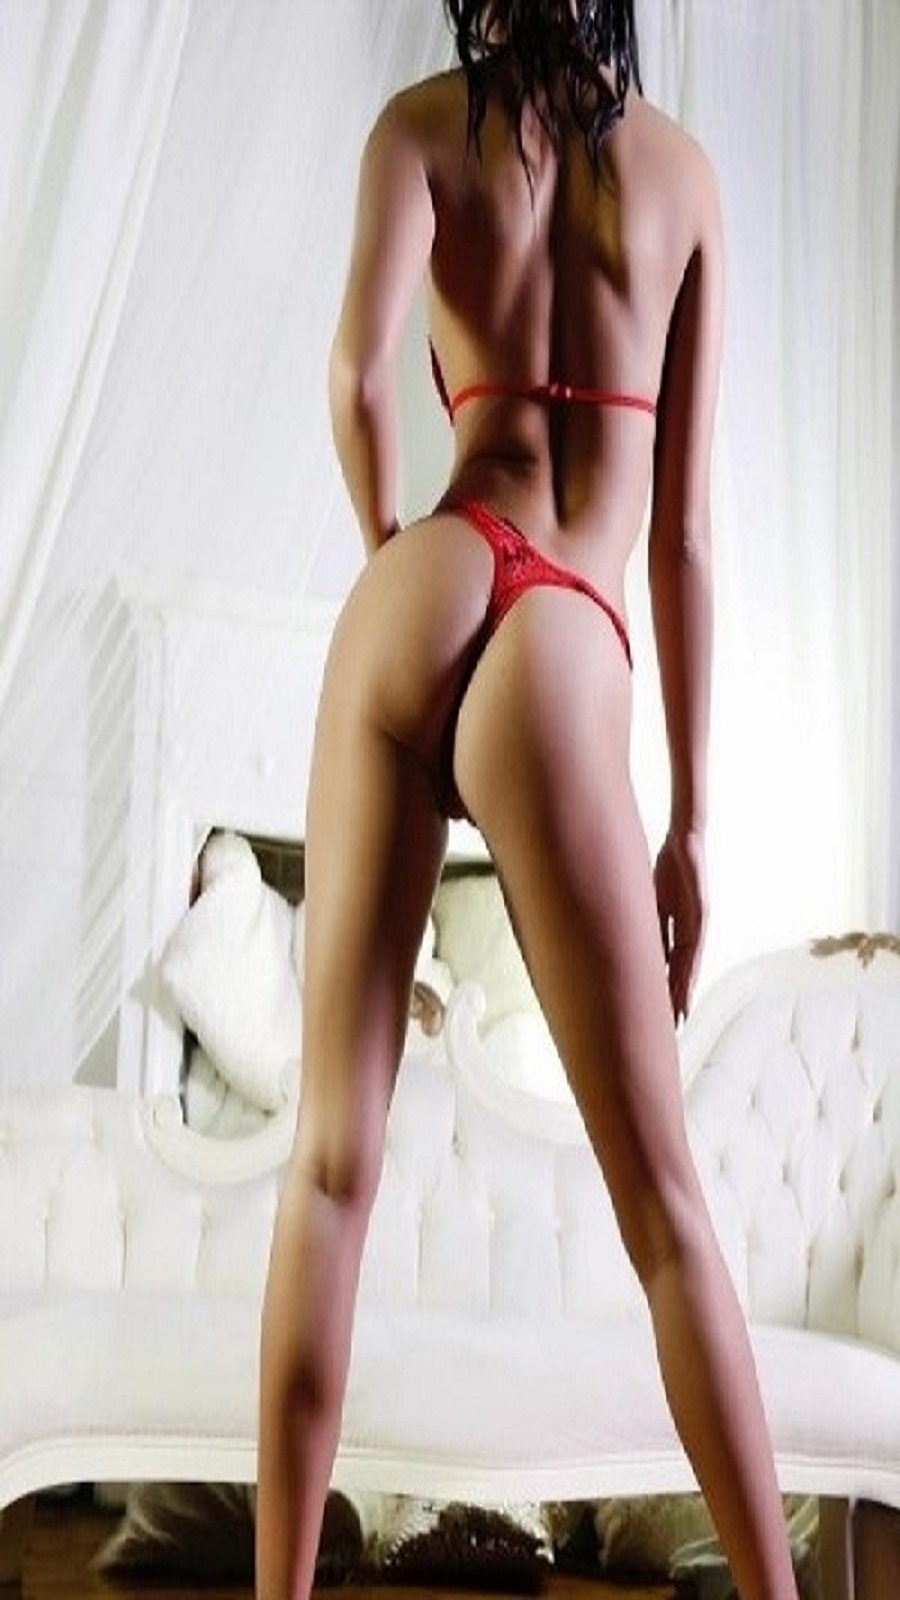 If you are looking for the perfect companion tonight give us a call on 07412621234 to book Leah for the best night of your life.